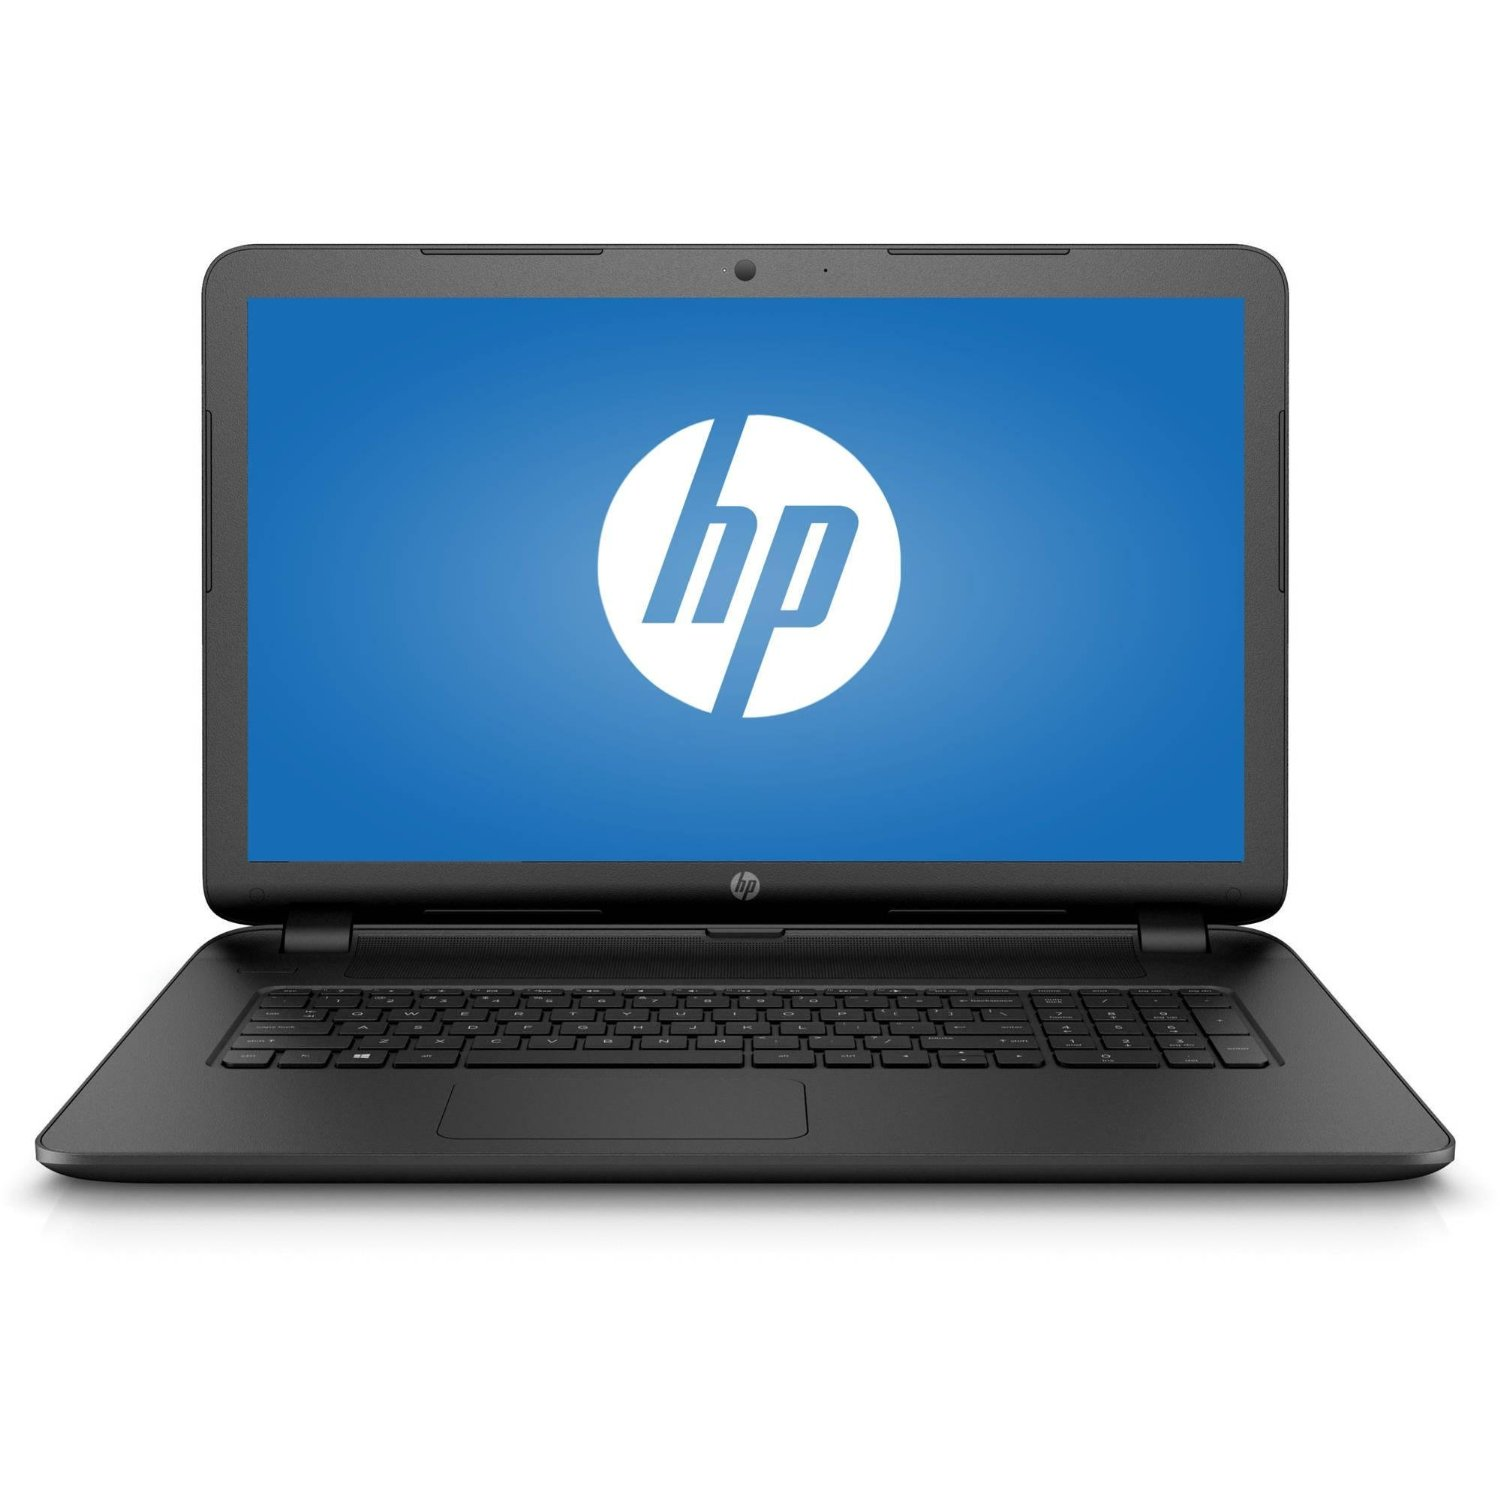 HP 17.3 Inch Notebook Laptop (AMD A8-7050 Processor UP To...